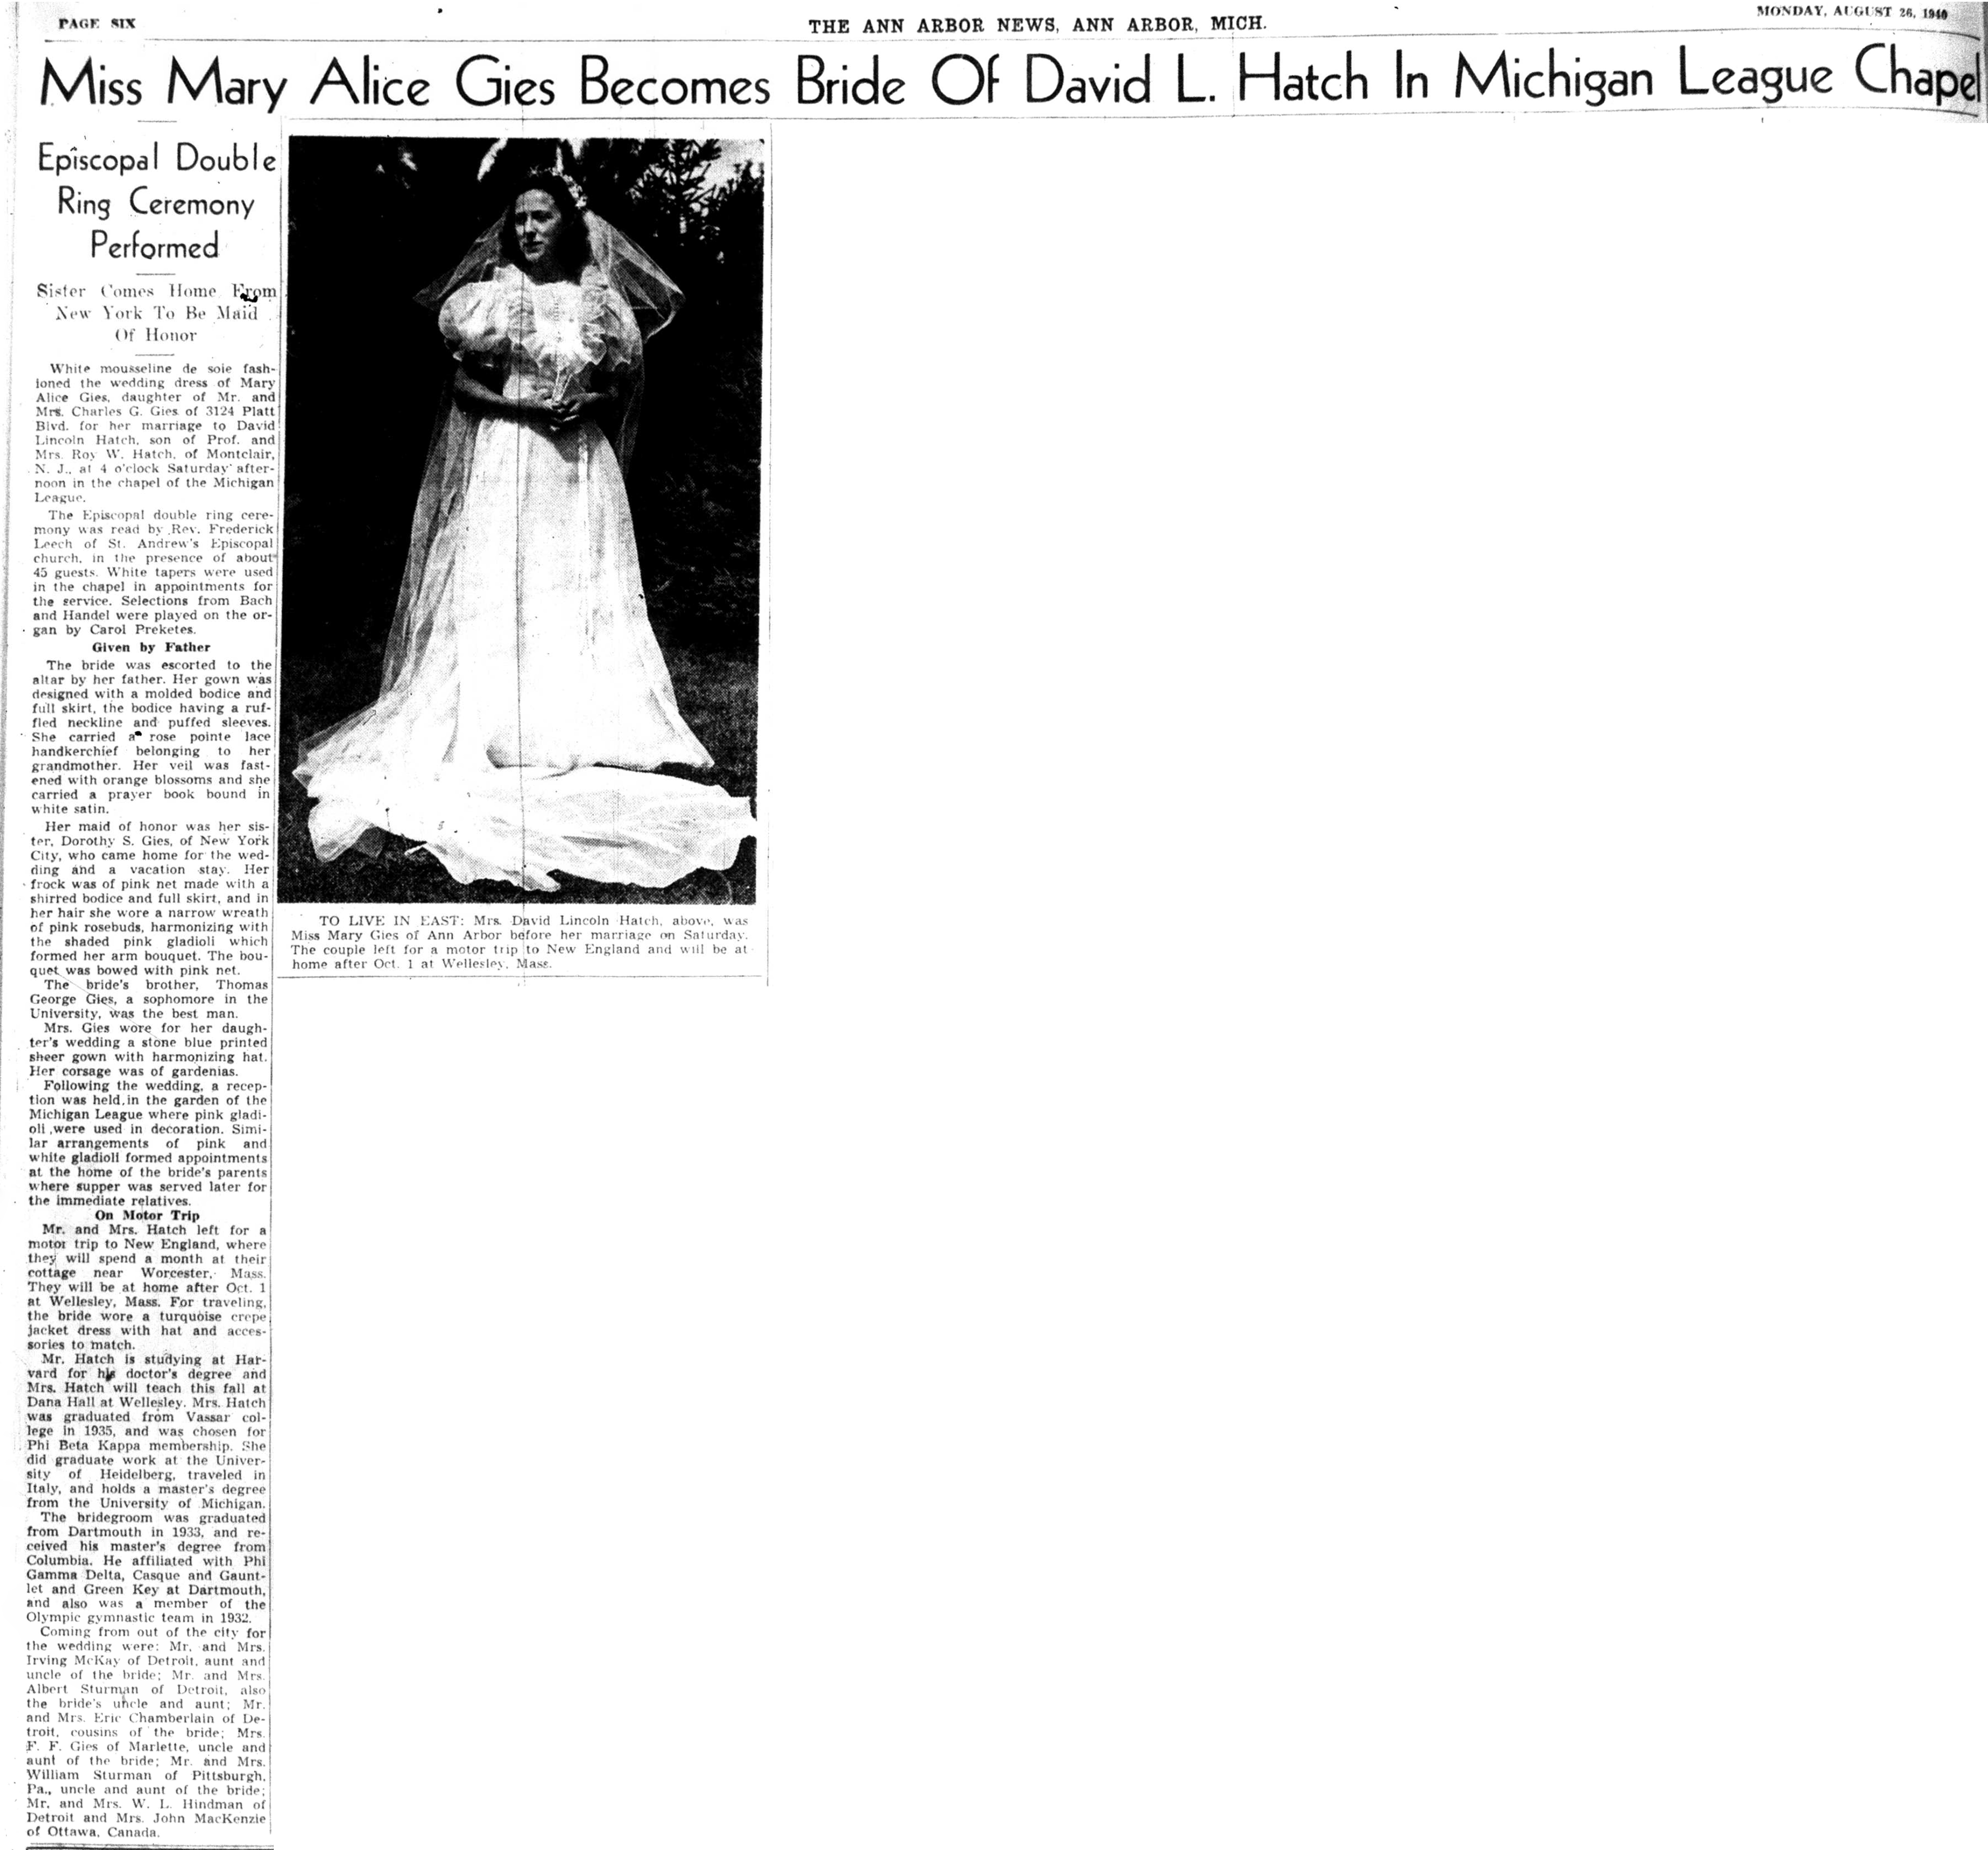 Miss Mary Alice Gies Becomes Bride Of David L. Hatch In Michigan League Chapel image